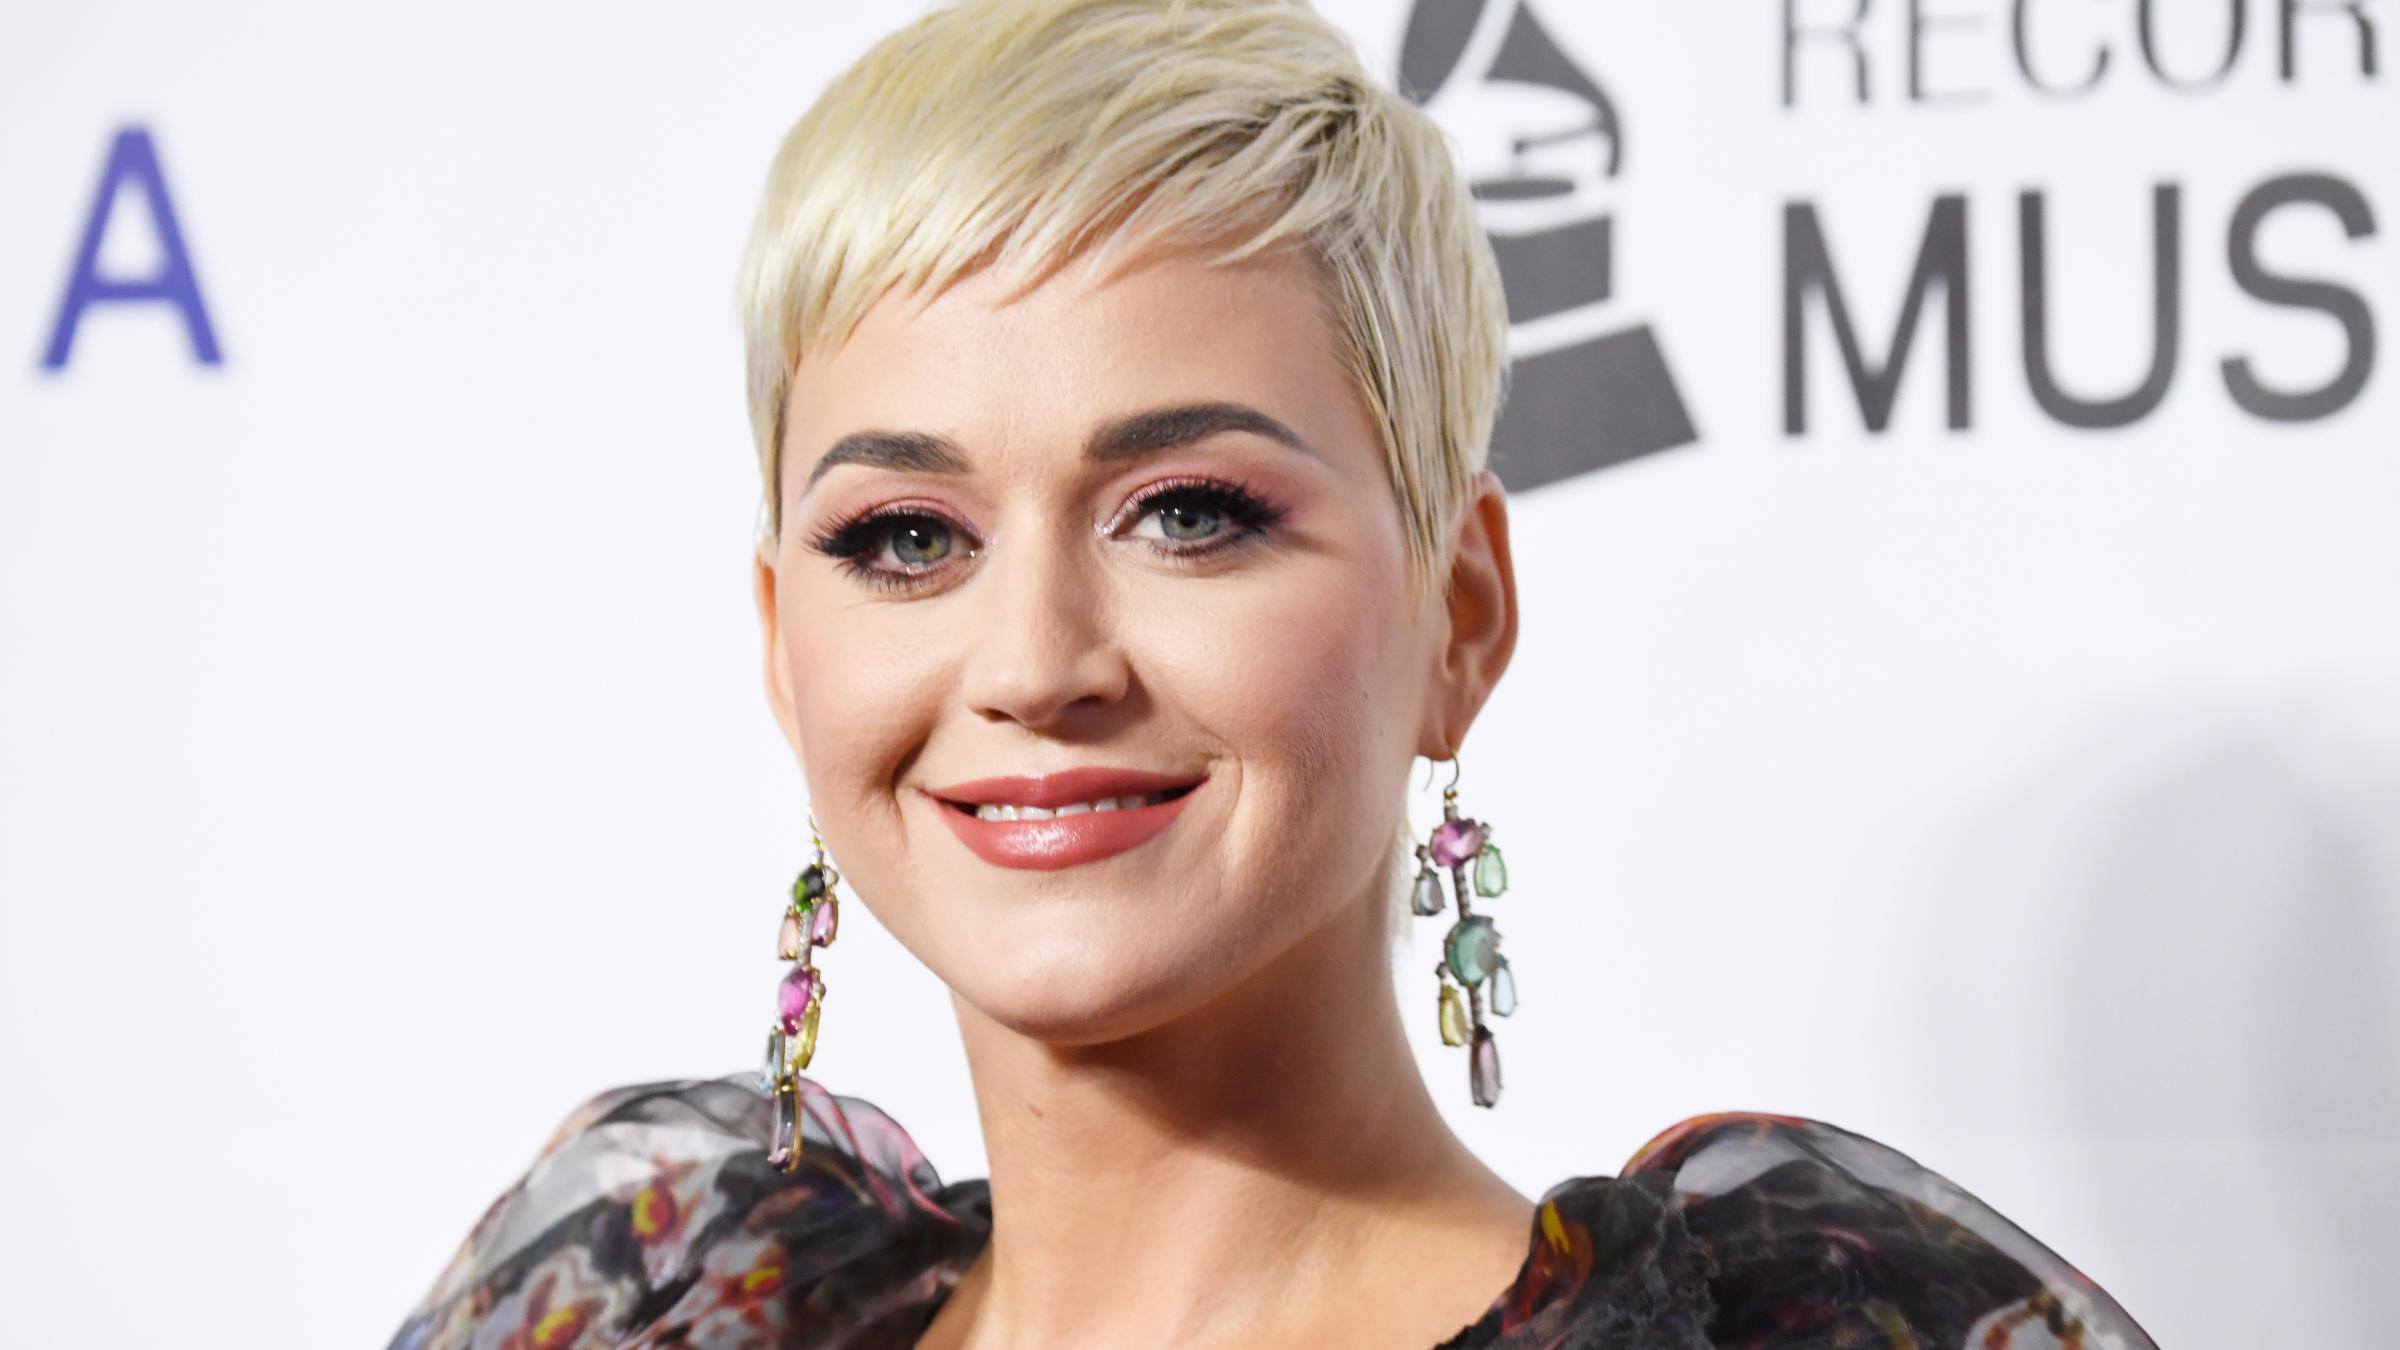 Katy Perry, Juicy J And Dr  Luke Liable For Copyright Infringement